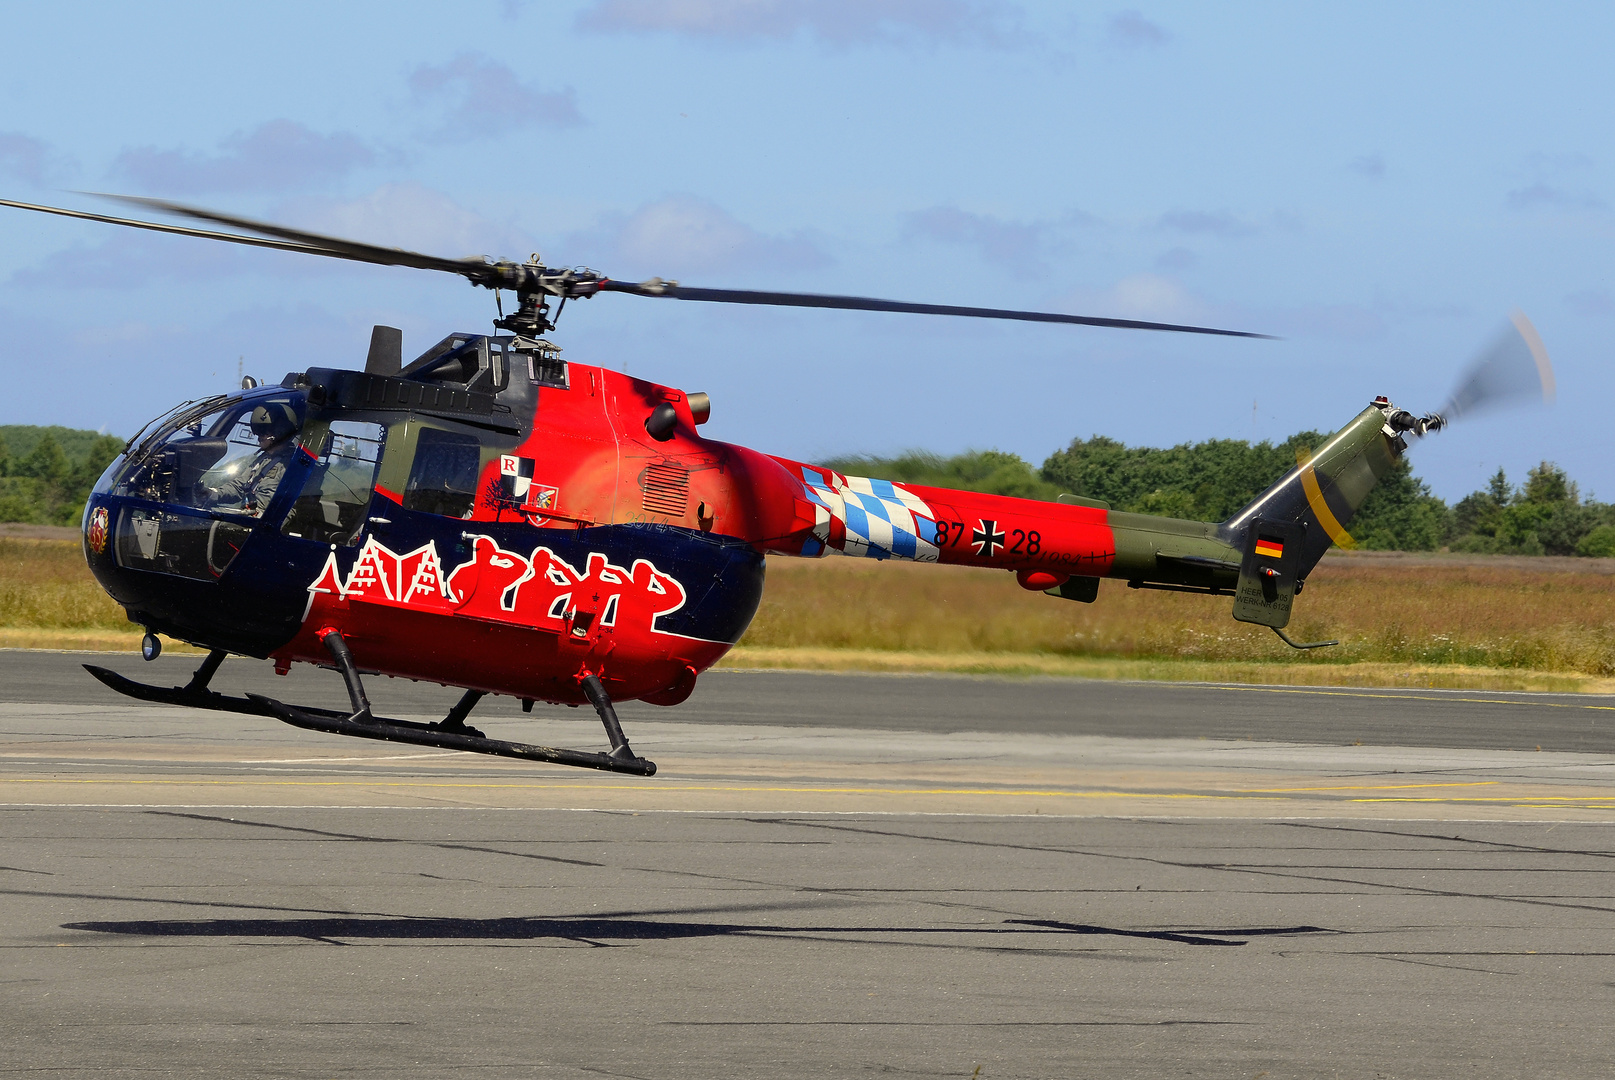 Bo-105, KHR-26, Fly Out Livery